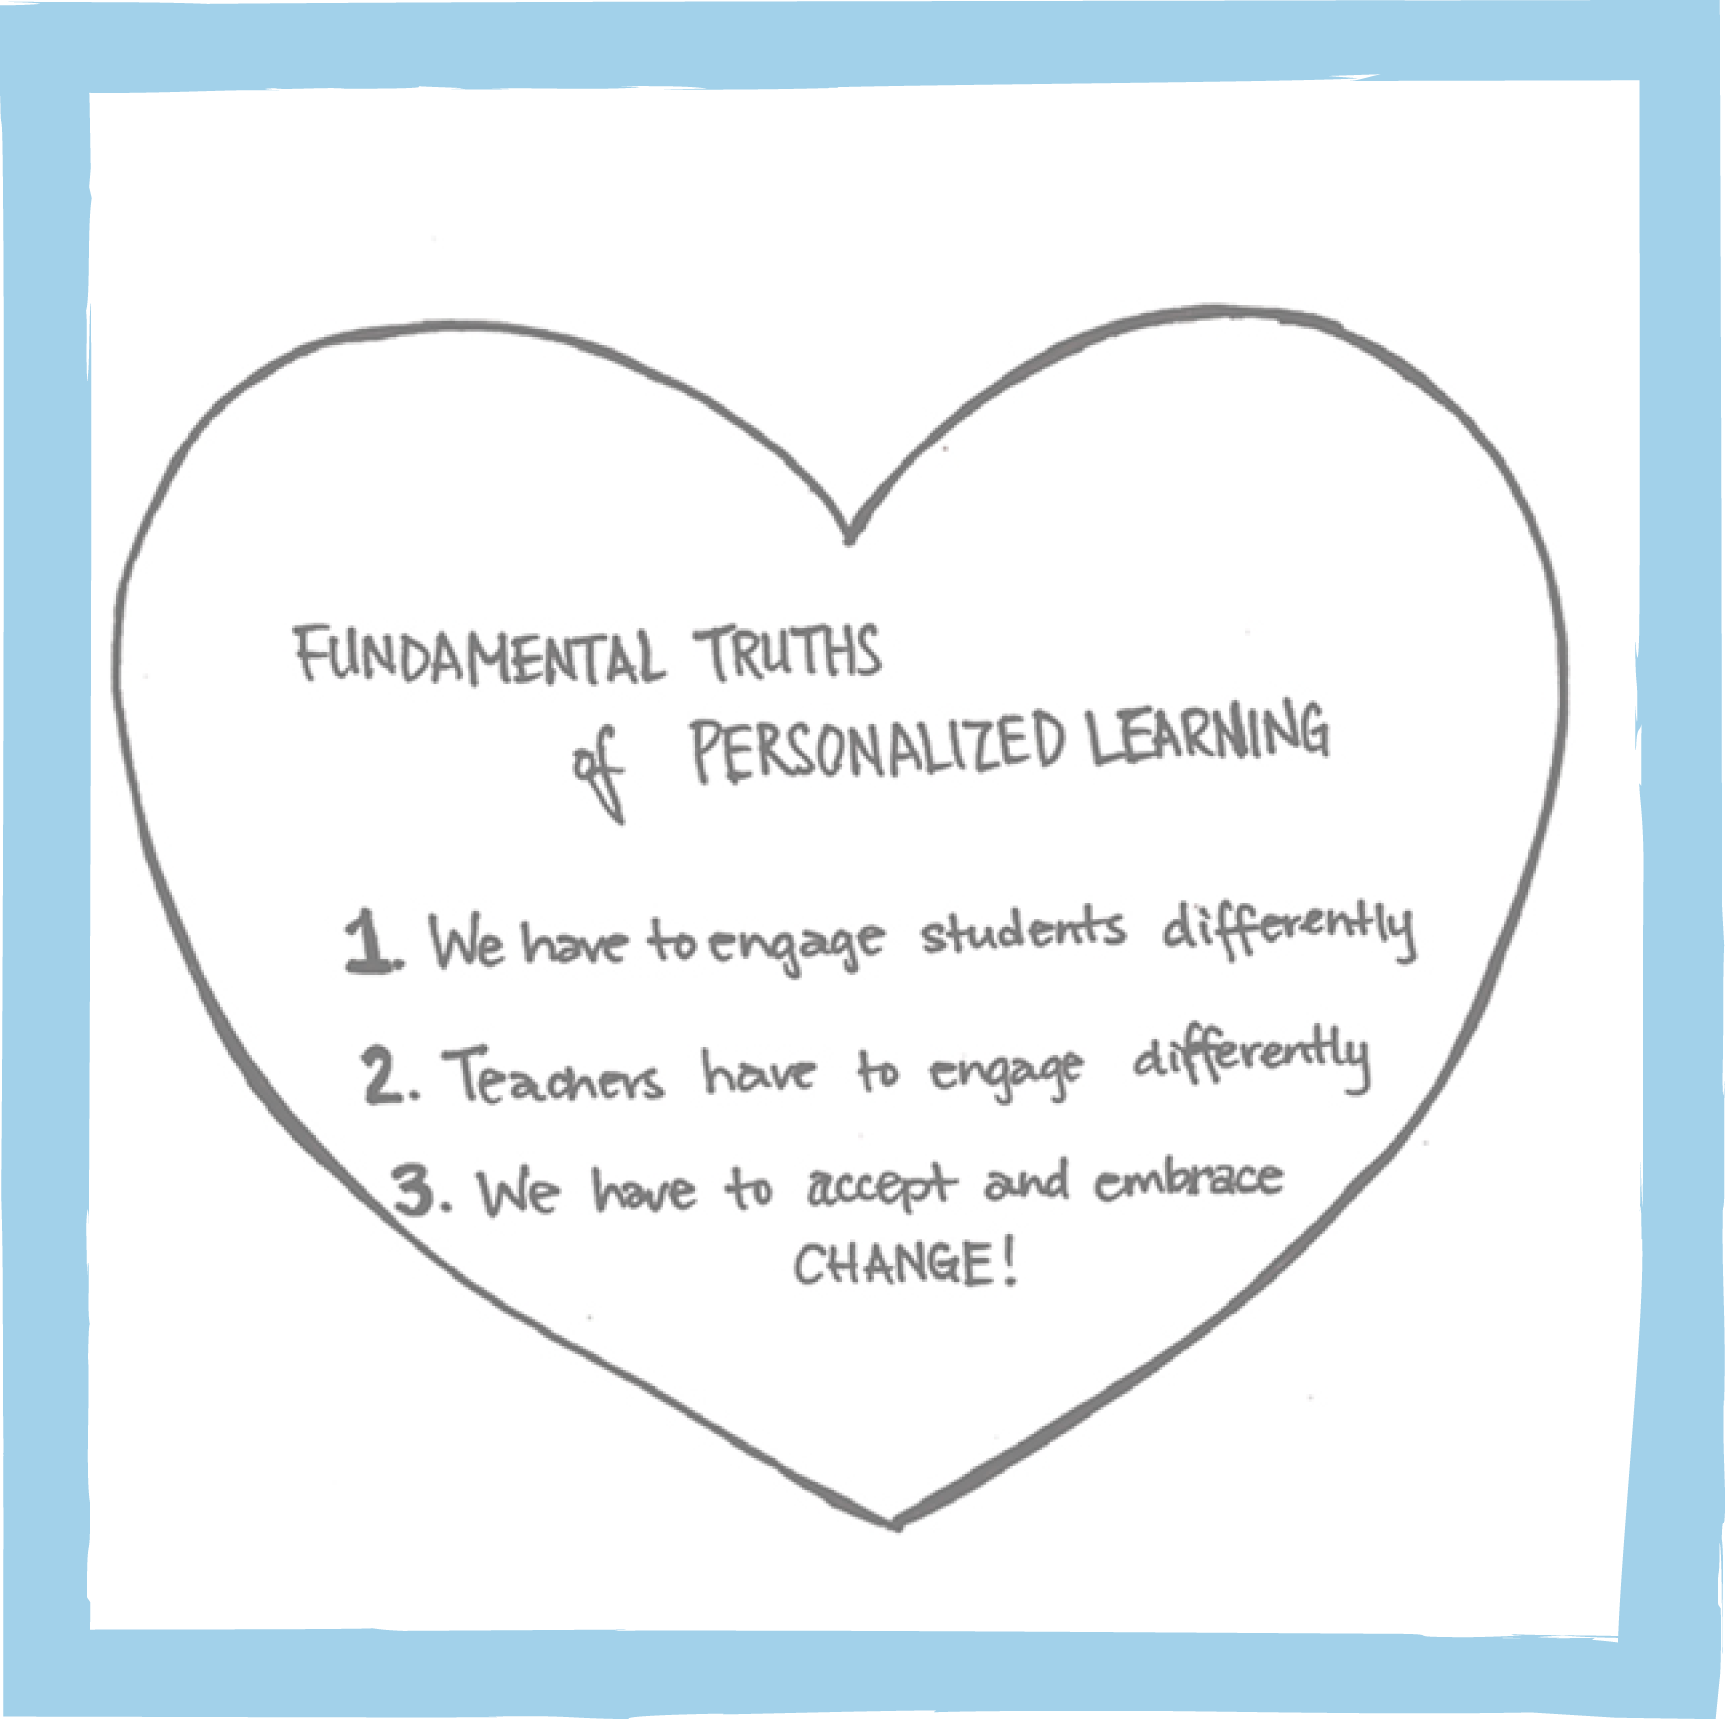 Fundamentals of personalized learning